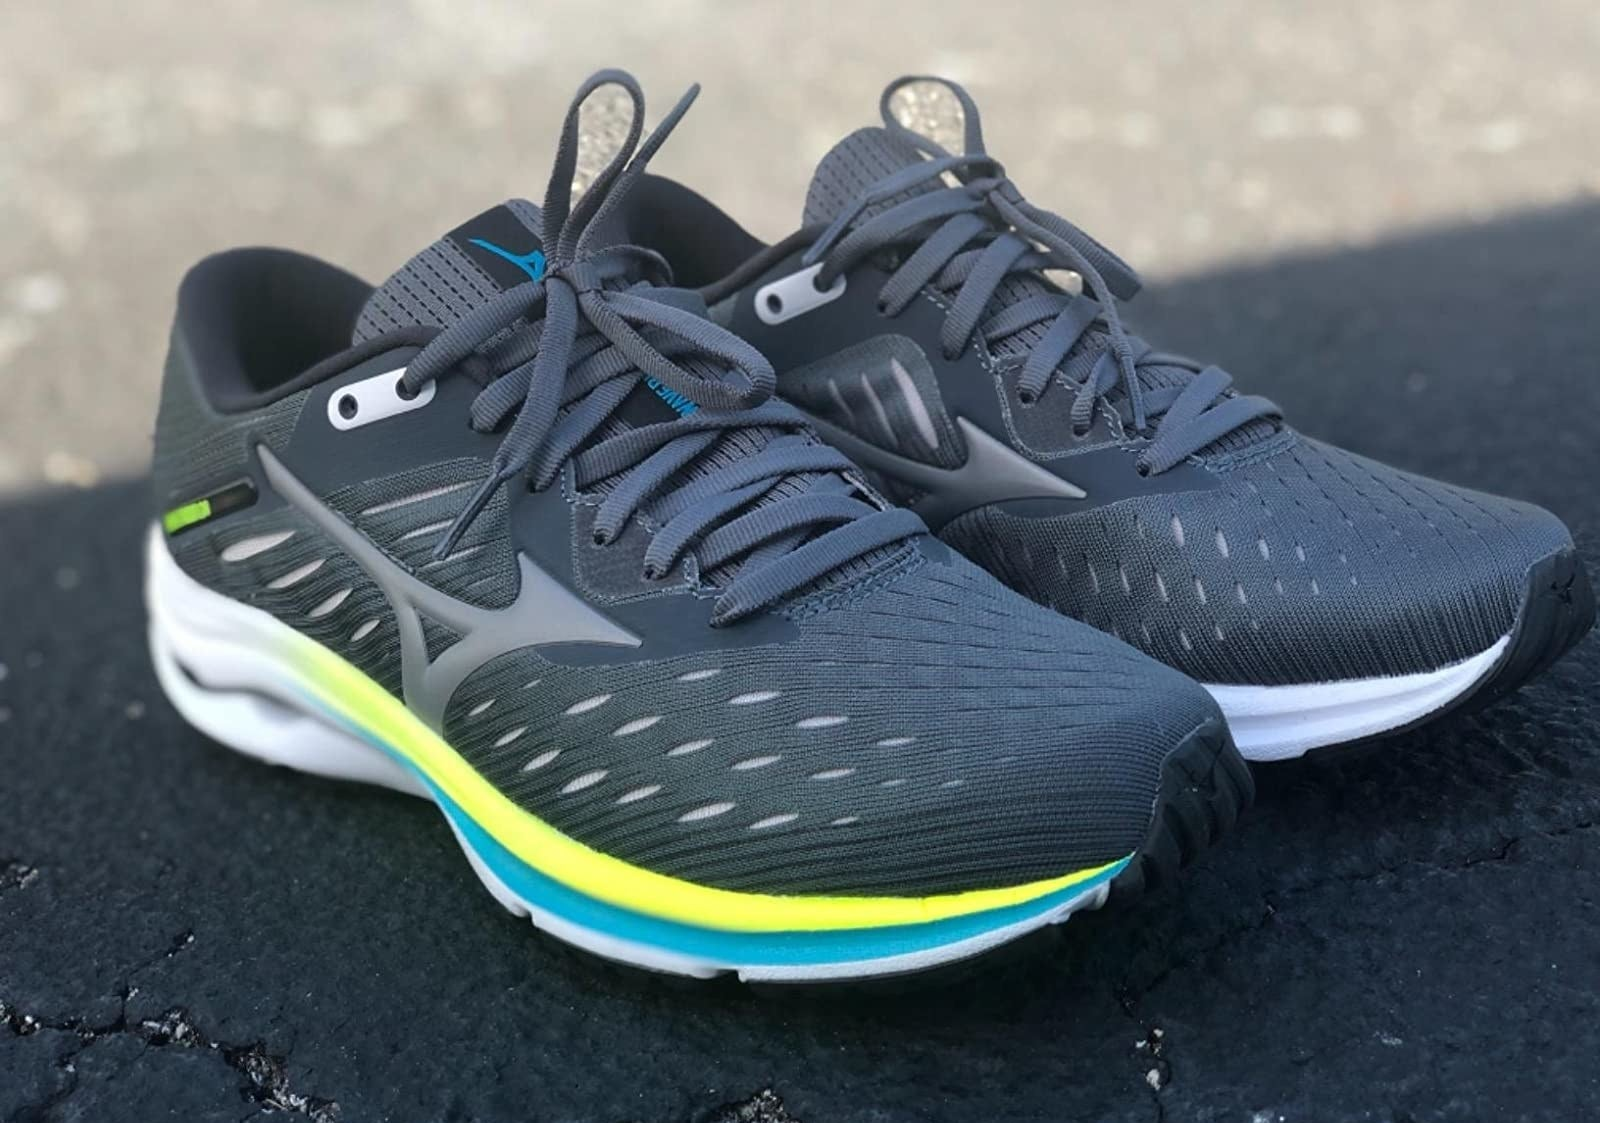 a reviewer photo of the gray running sneakers